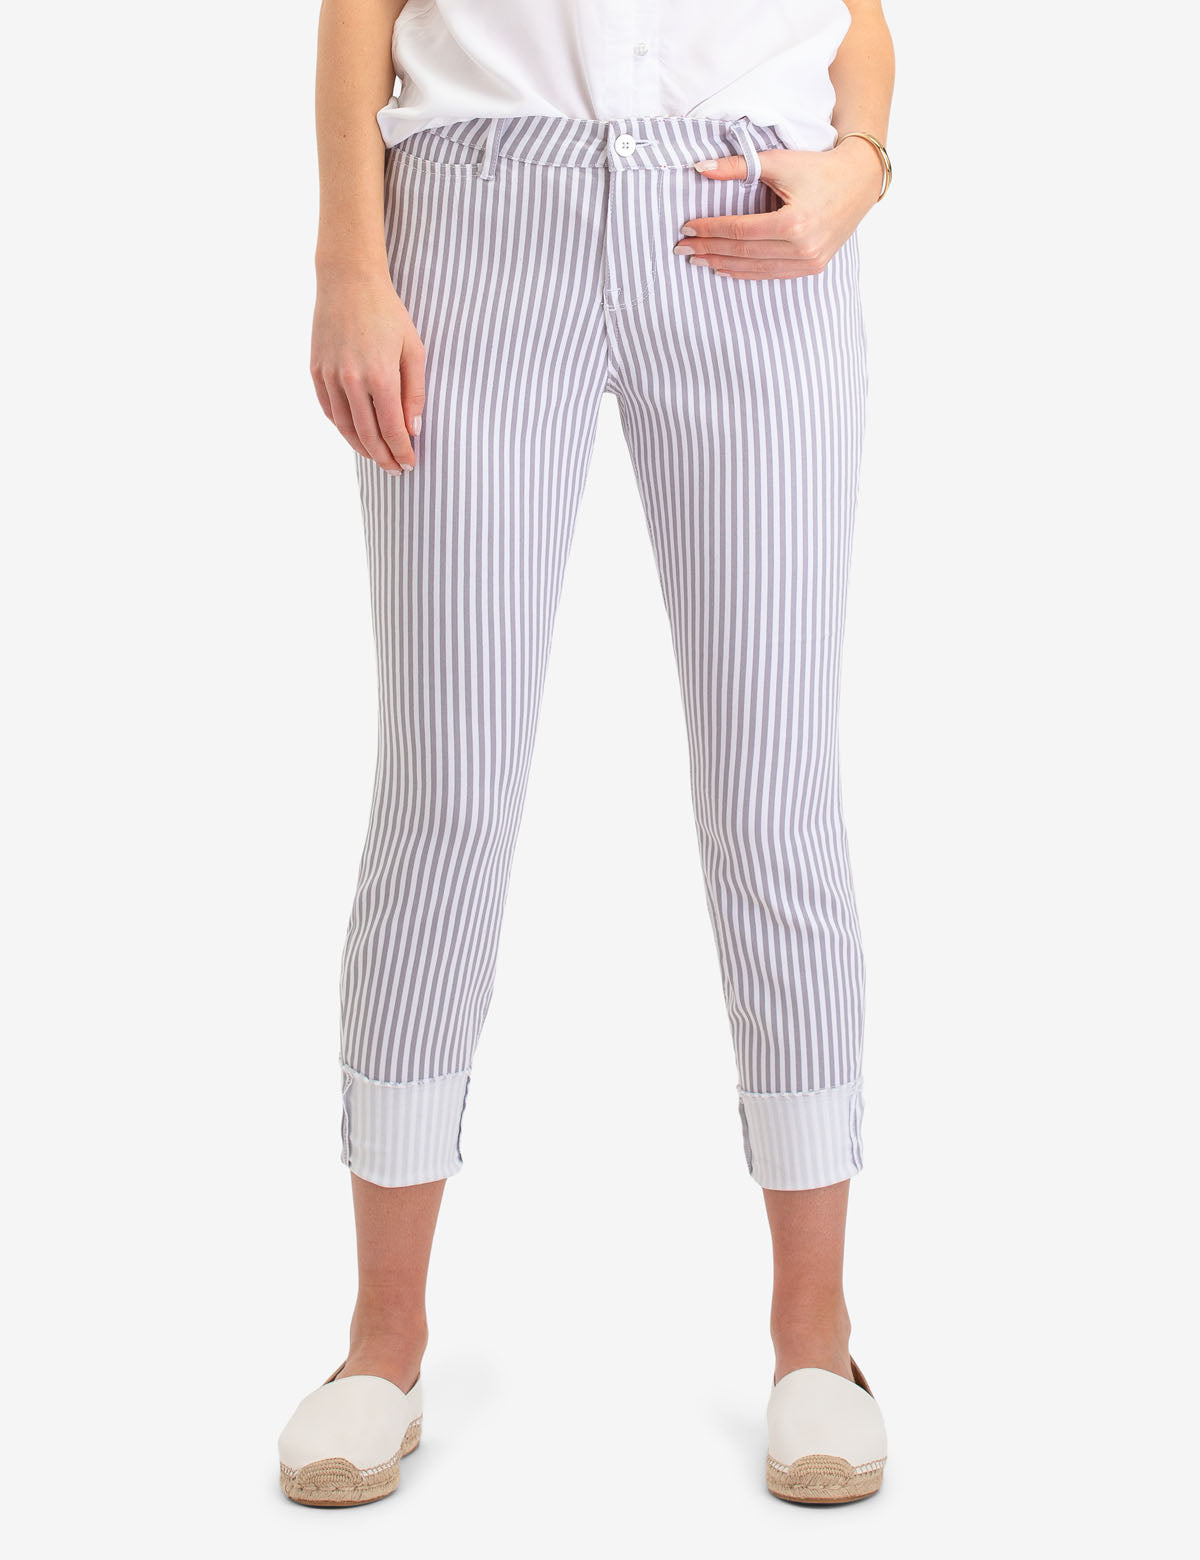 STRIPED CROP JEGGING - U.S. Polo Assn.